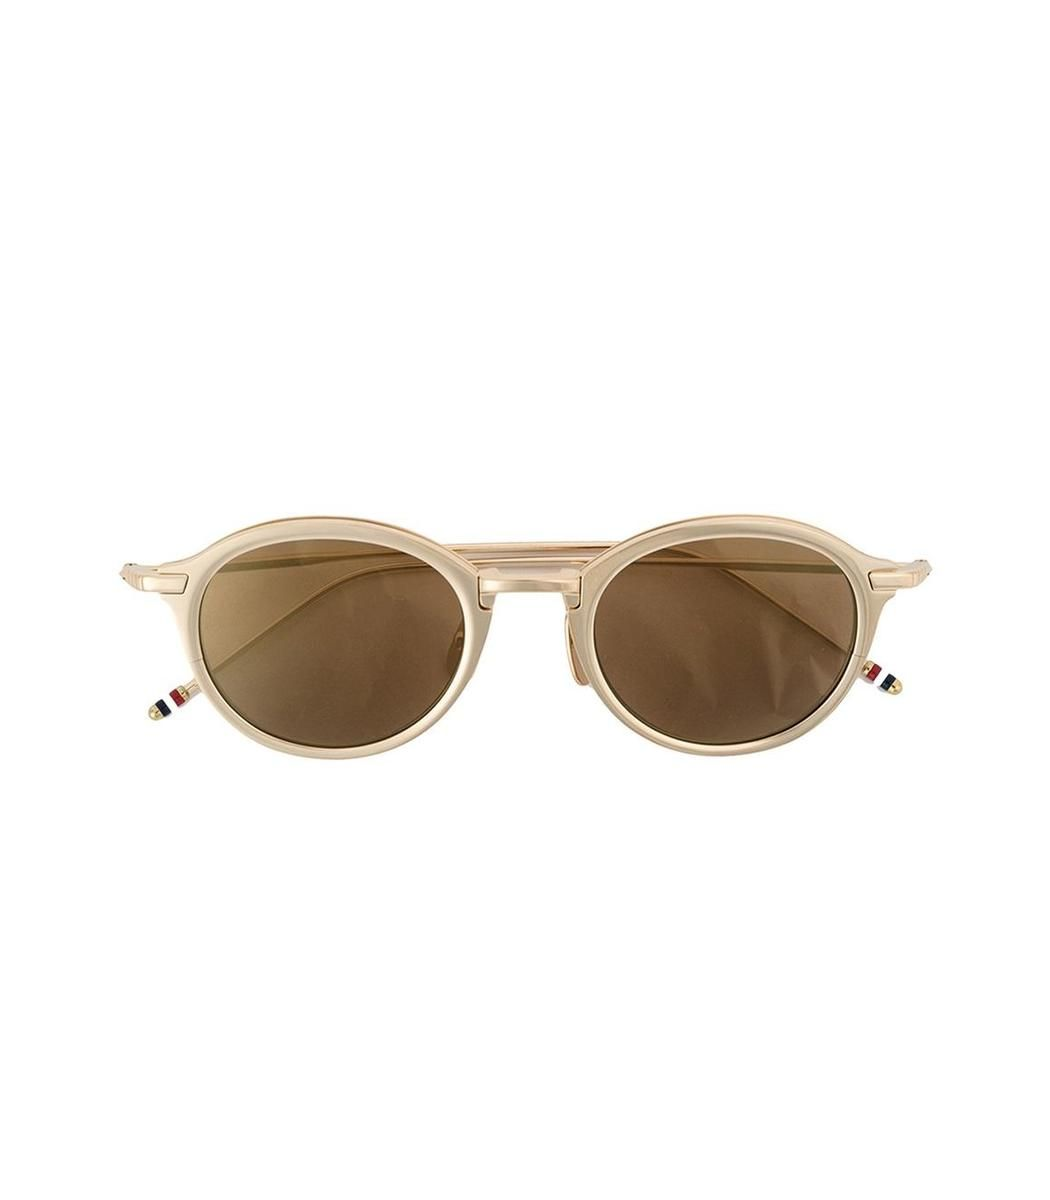 Gold-plated sunglasses featuring a round frame design. ShopBazaar ...